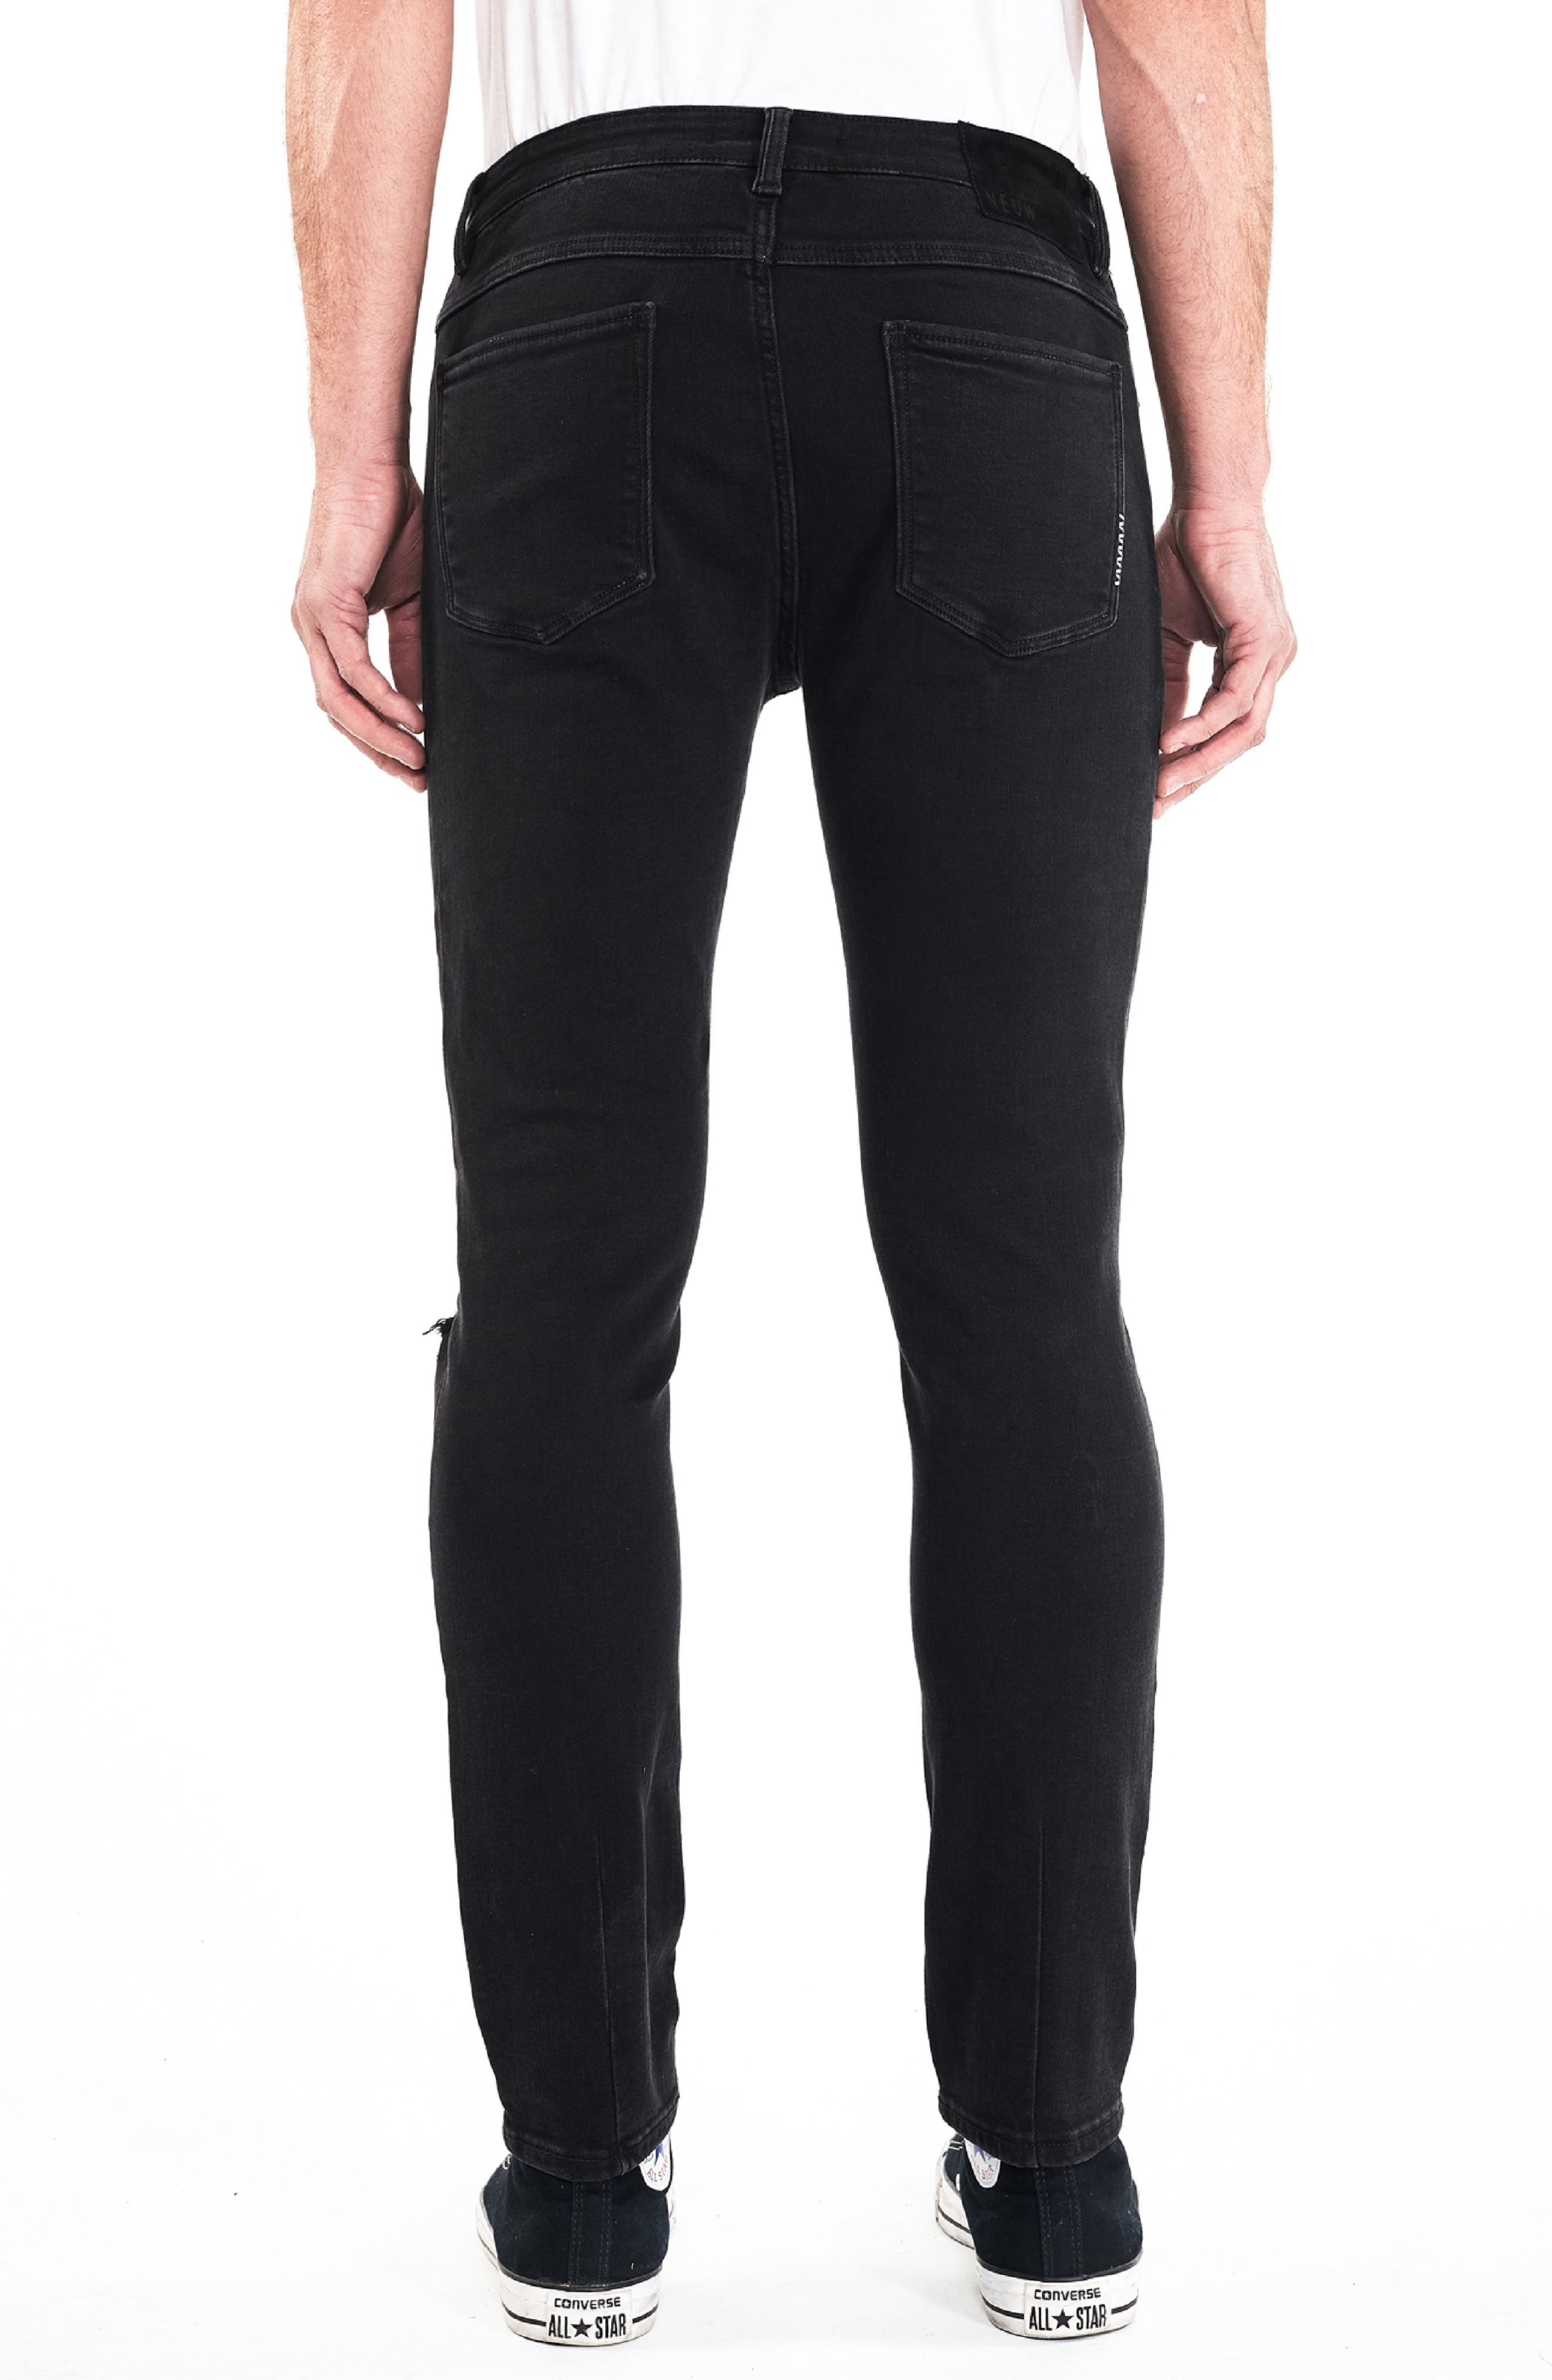 NEUW,                             Ray Slouchy Slim Fit Jeans,                             Alternate thumbnail 2, color,                             001